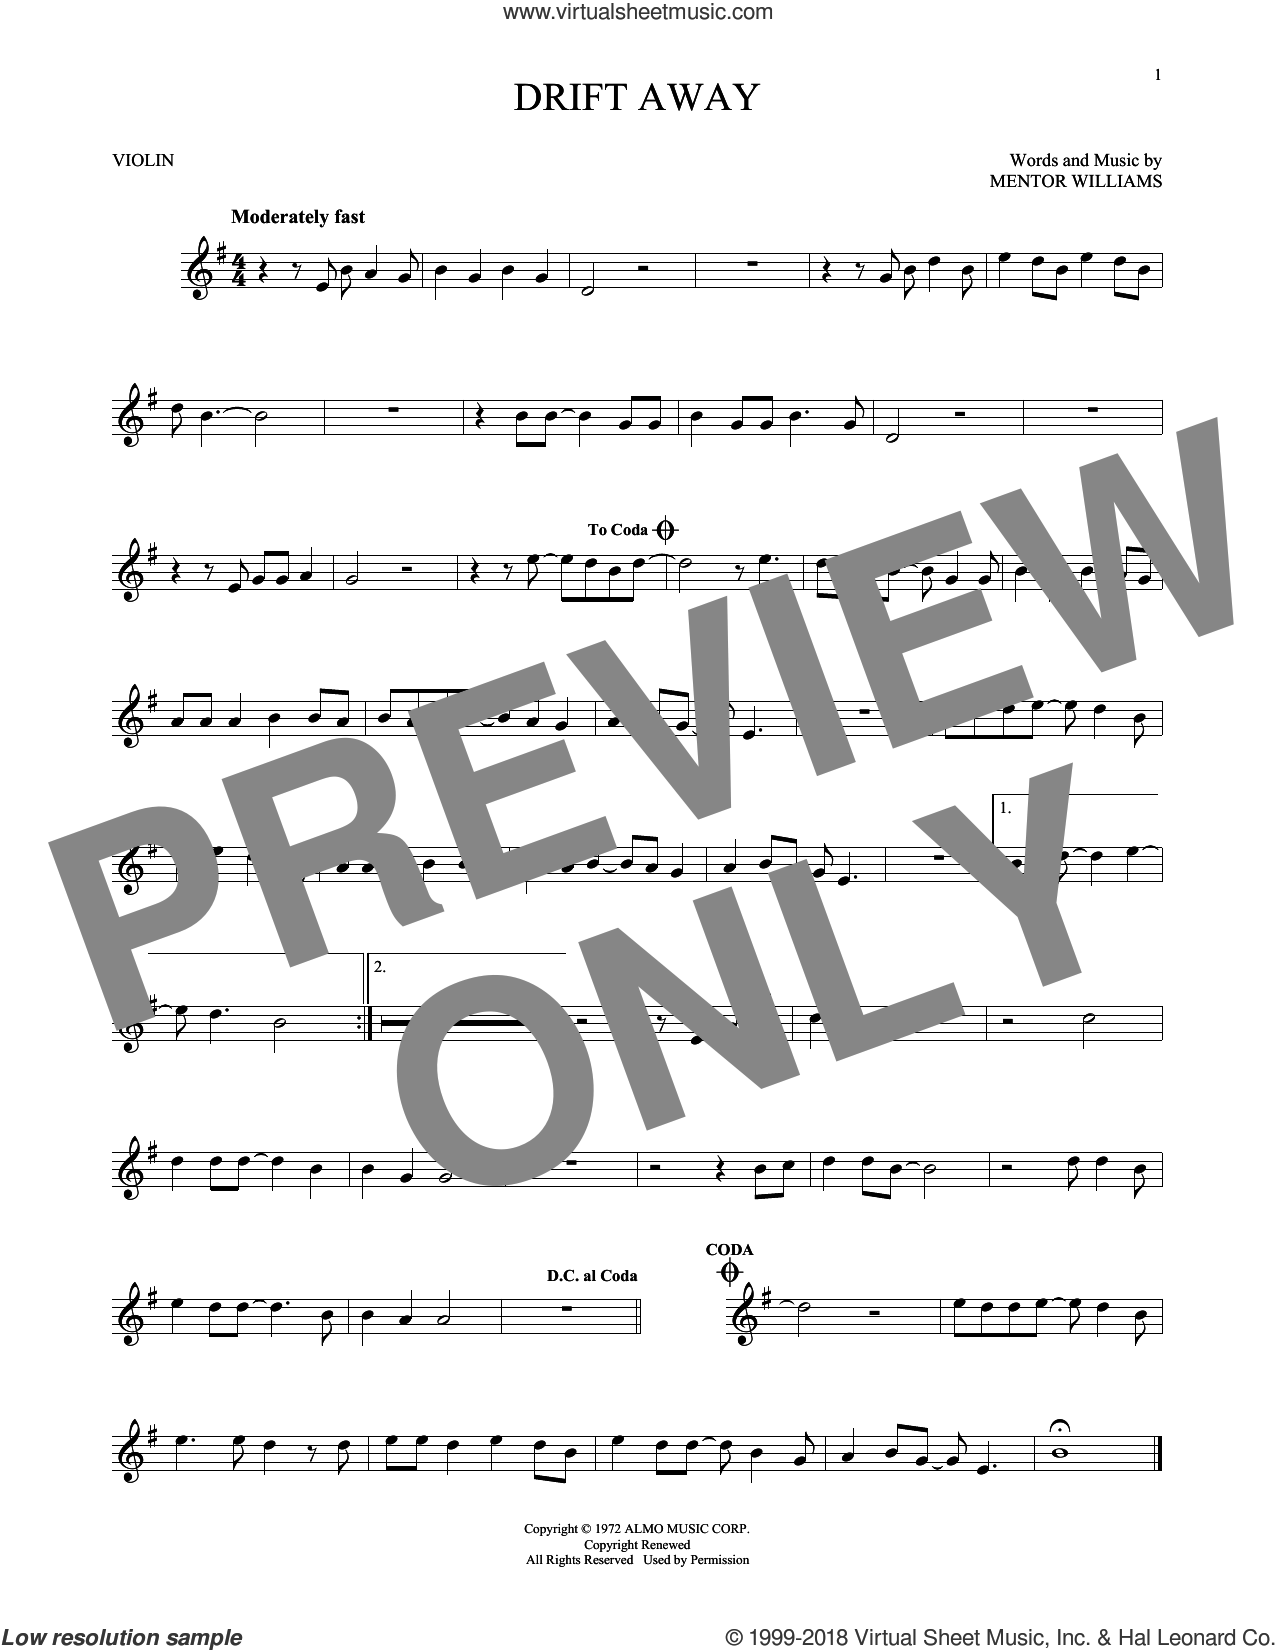 Drift Away sheet music for violin solo by Mentor Williams